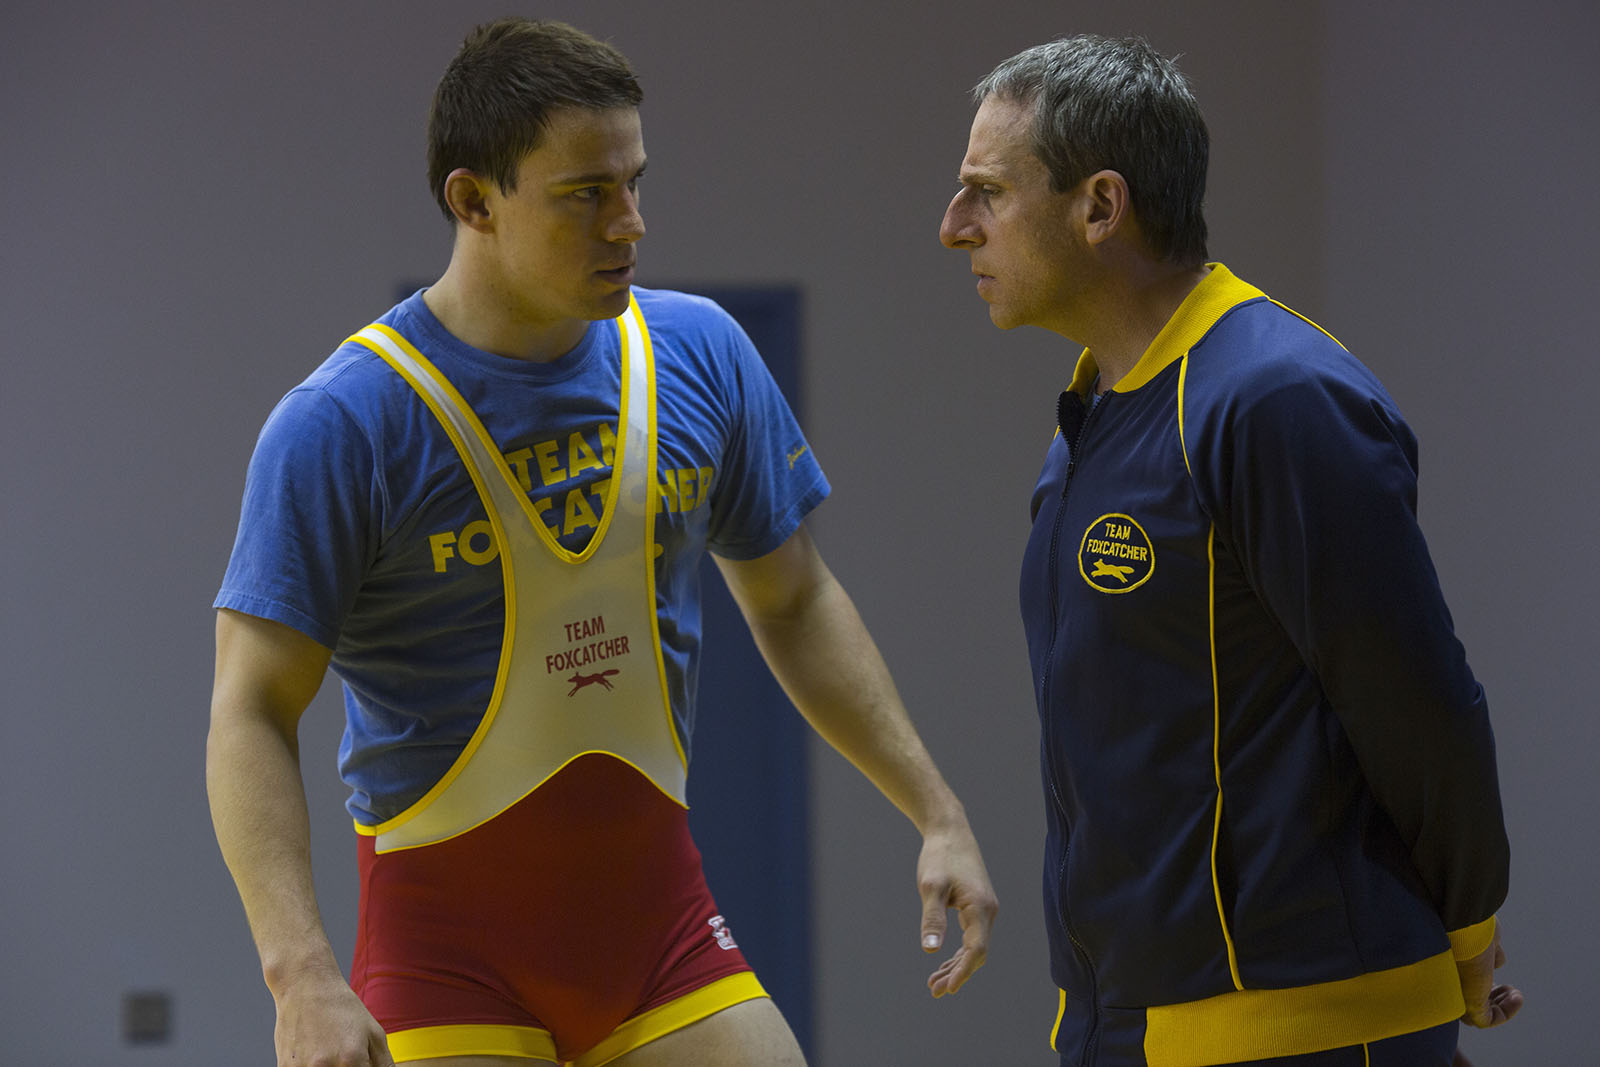 foxcatcher film gay